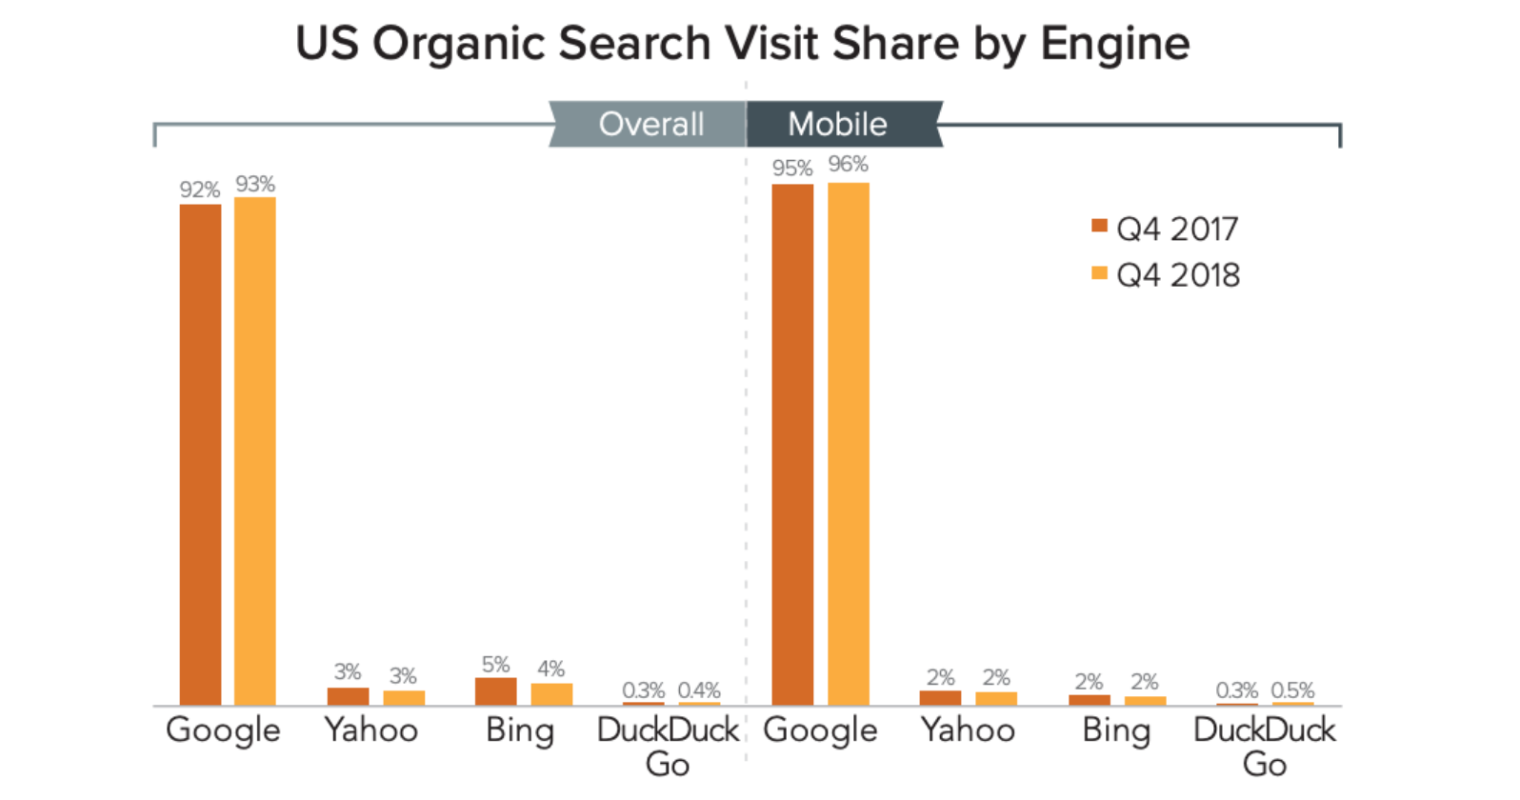 Google Produced 96% of US Mobile Search Visits in Q4 2018